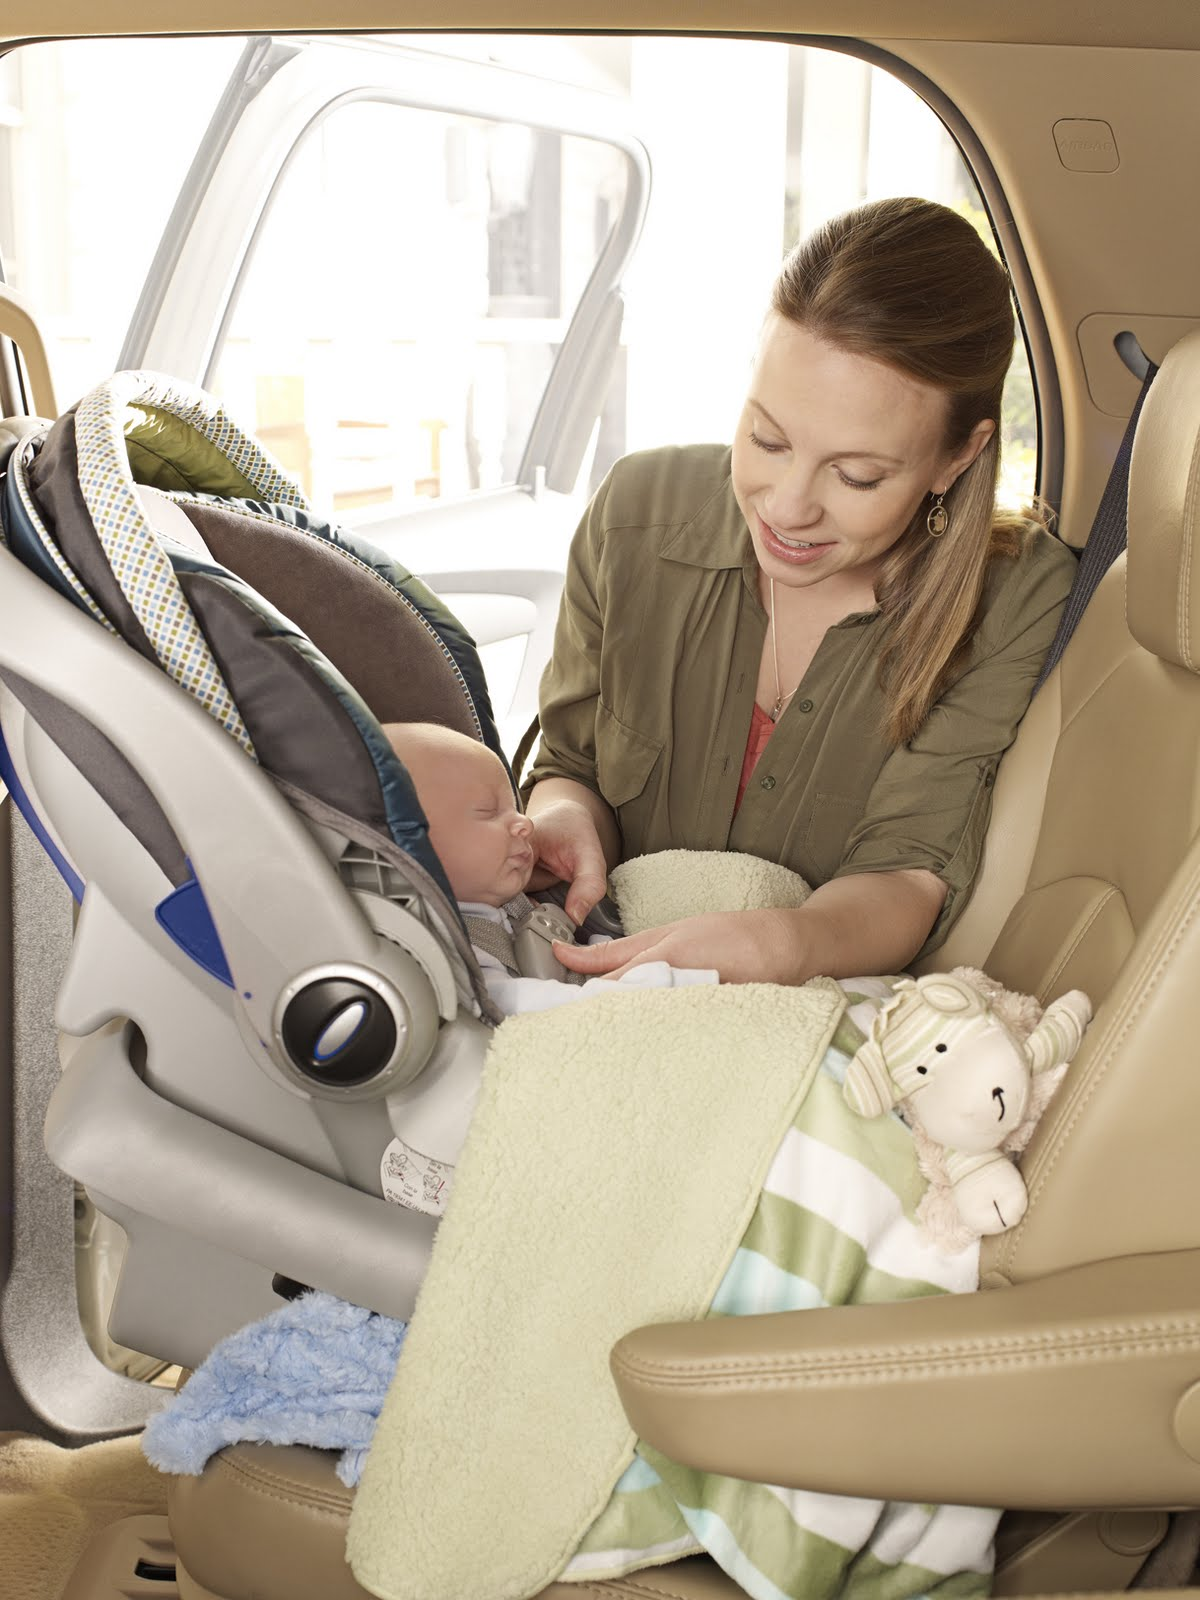 Texas Health Moms Clearing Up Car Seat Misconceptions